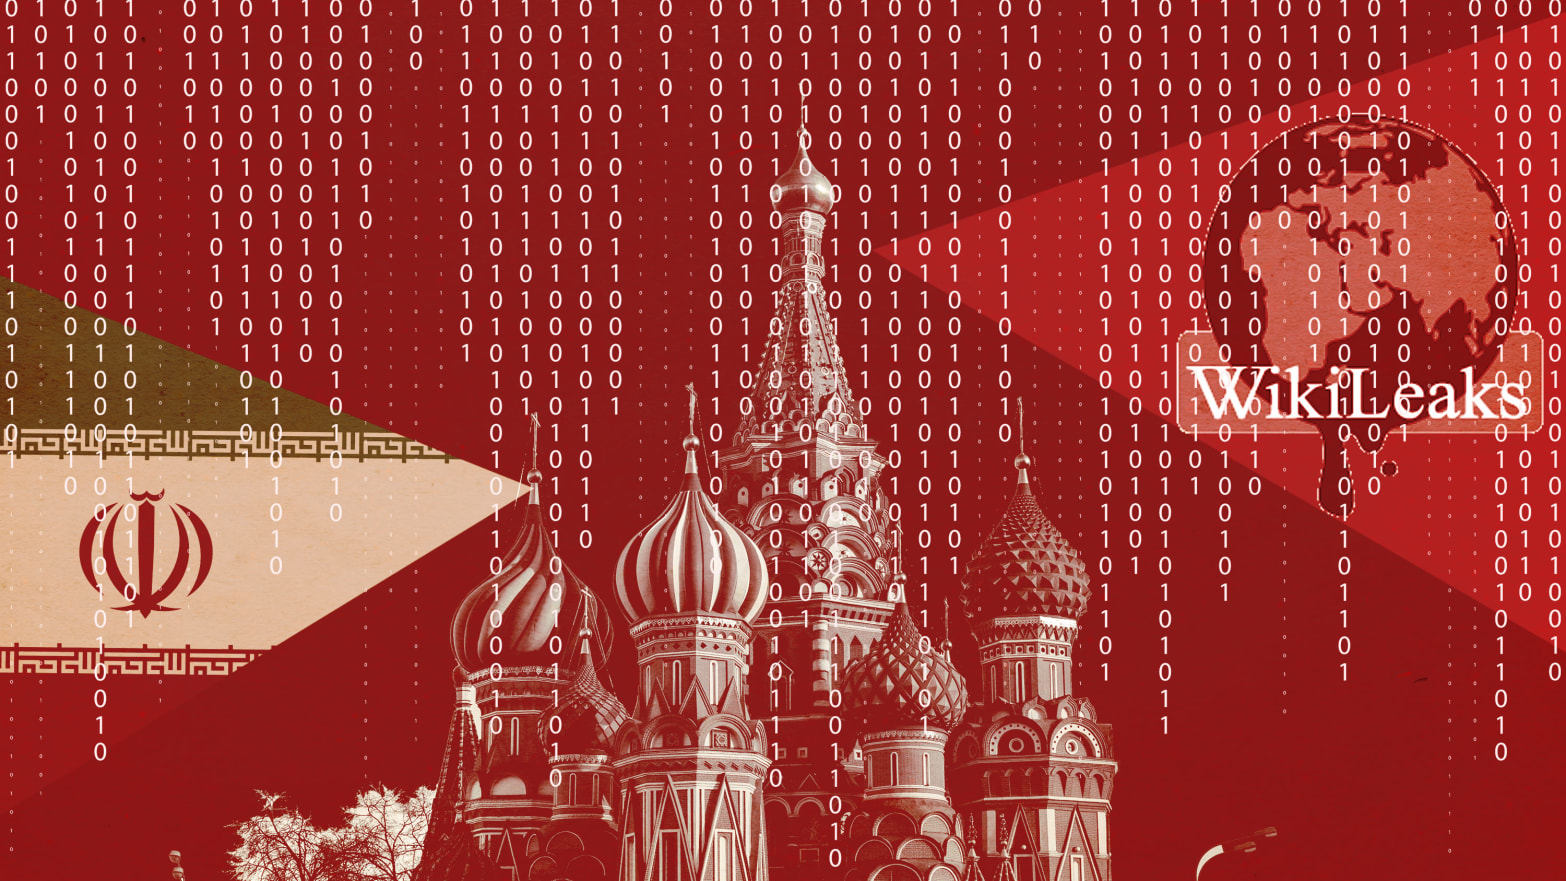 Moscow Server Hosted WikiLeaks and Iran's Hackers Weeks Apart